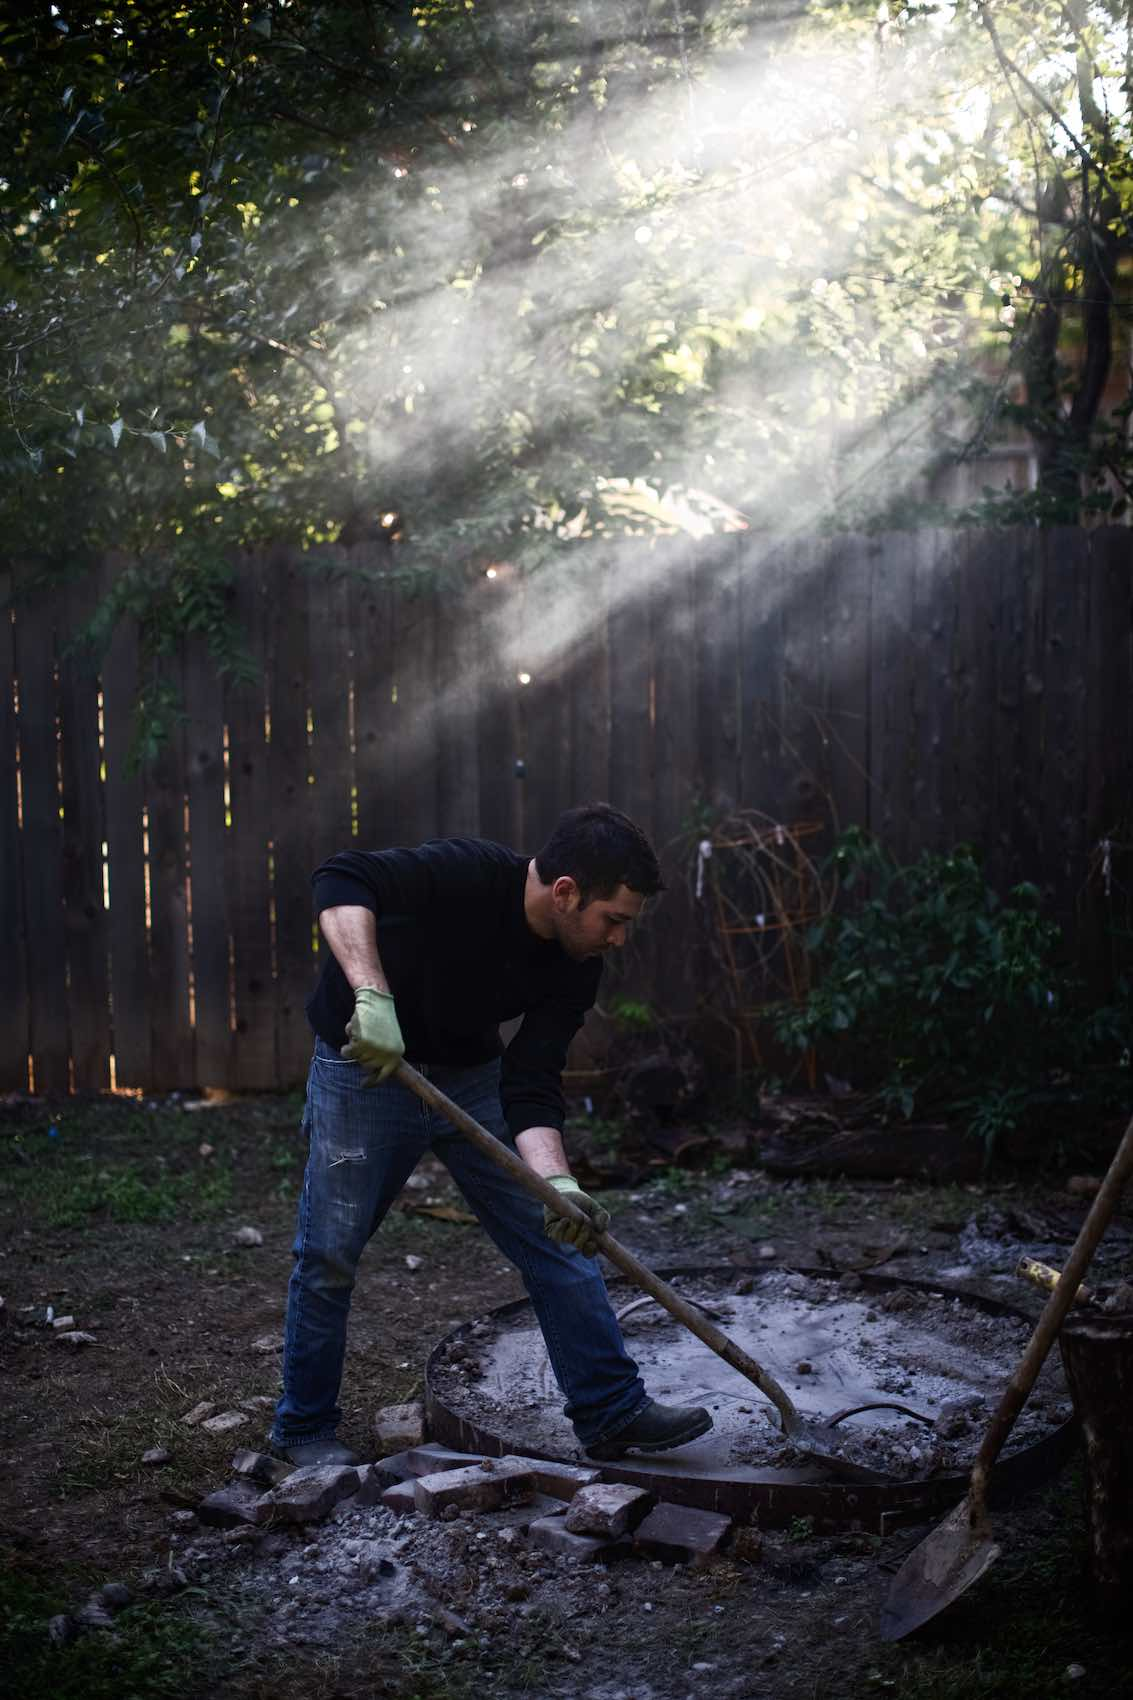 Jody Horton Photography - Shoveling charcoal outside.